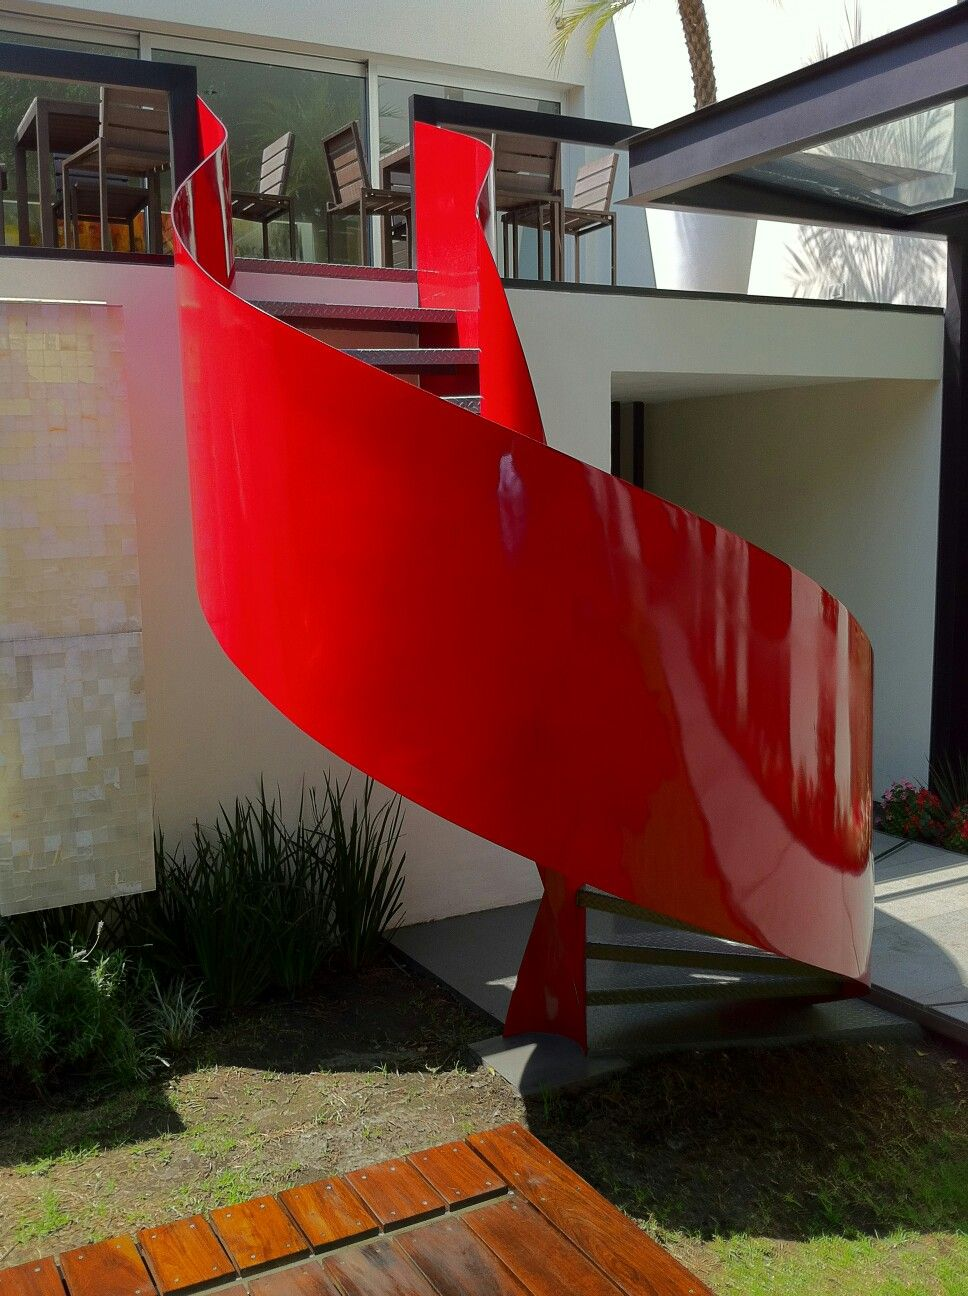 Pin by PEDRO RIVEROLL on Stairs Pinterest